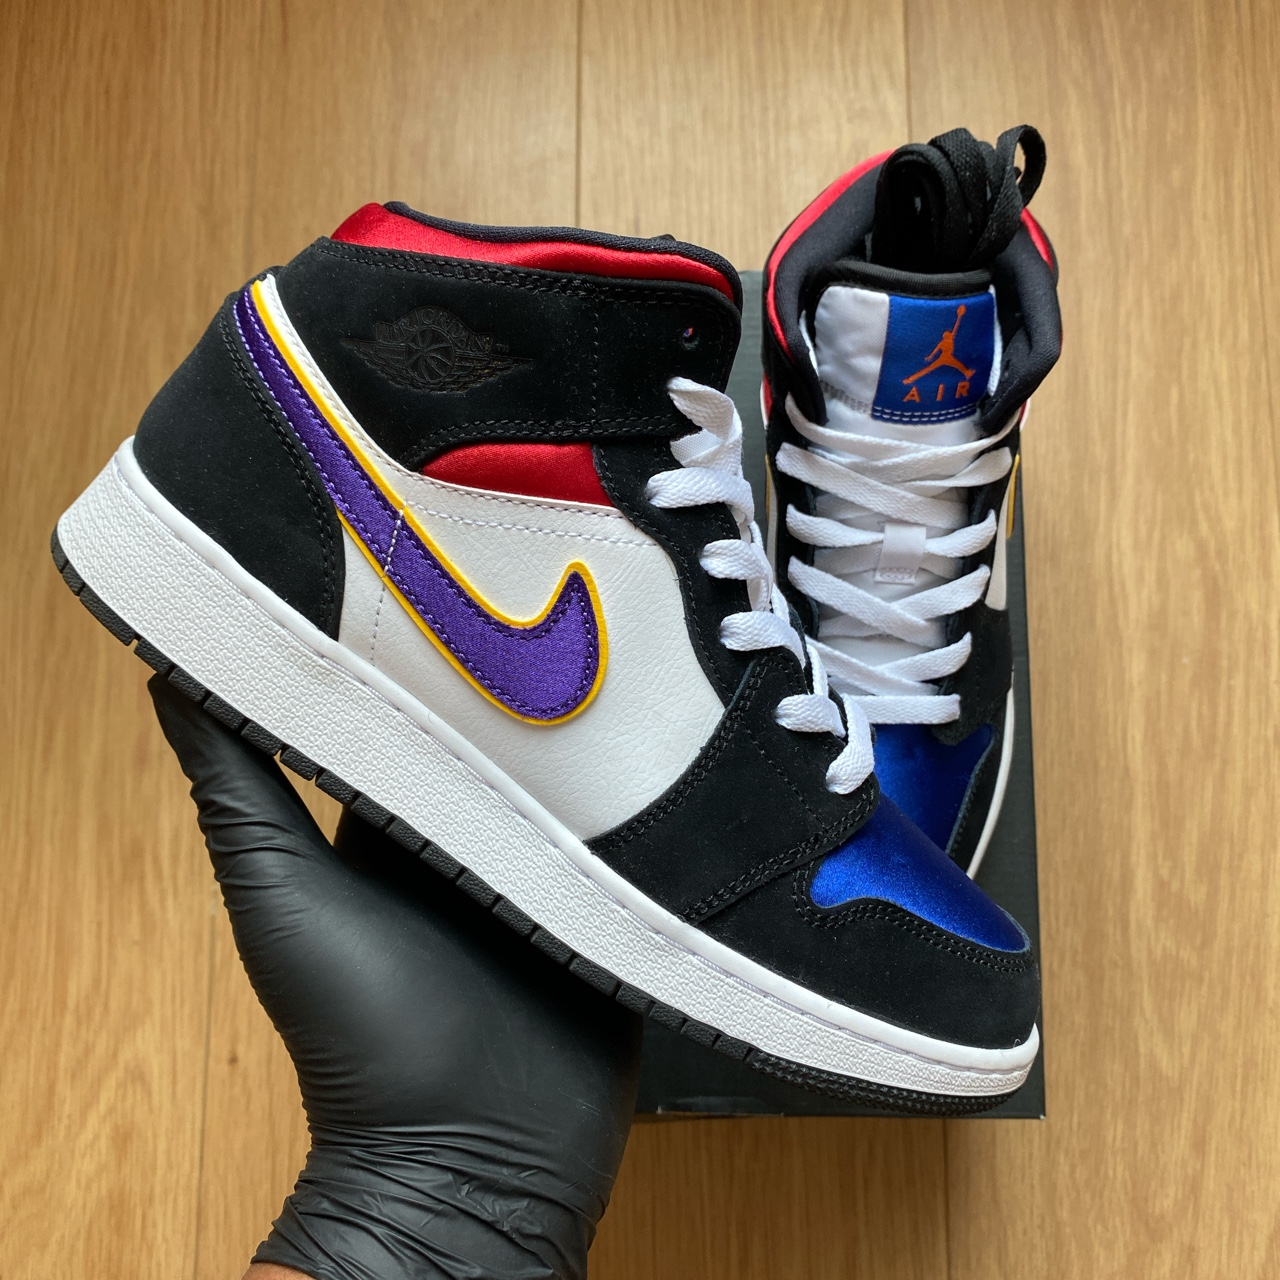 Jordan 1 Mid Lakers Top 3 Gs Online Hotsell, UP TO 64% OFF